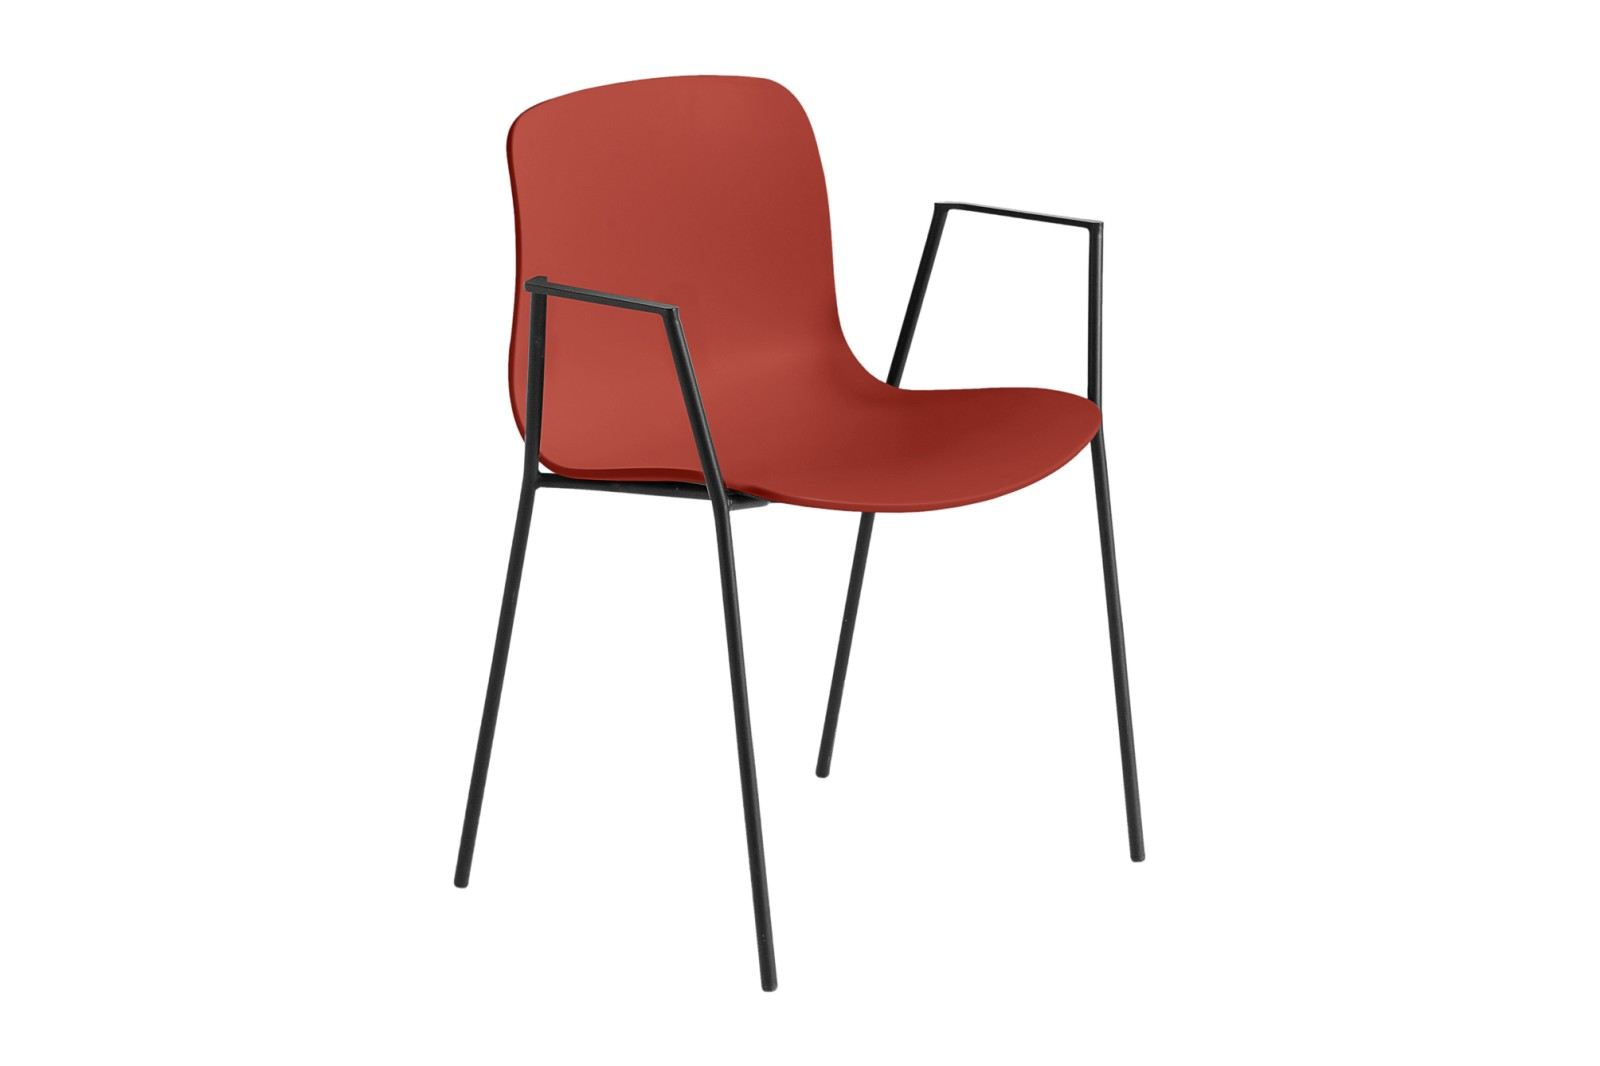 About A Chair AAC18 Warm red, Black Powder Coated Steel